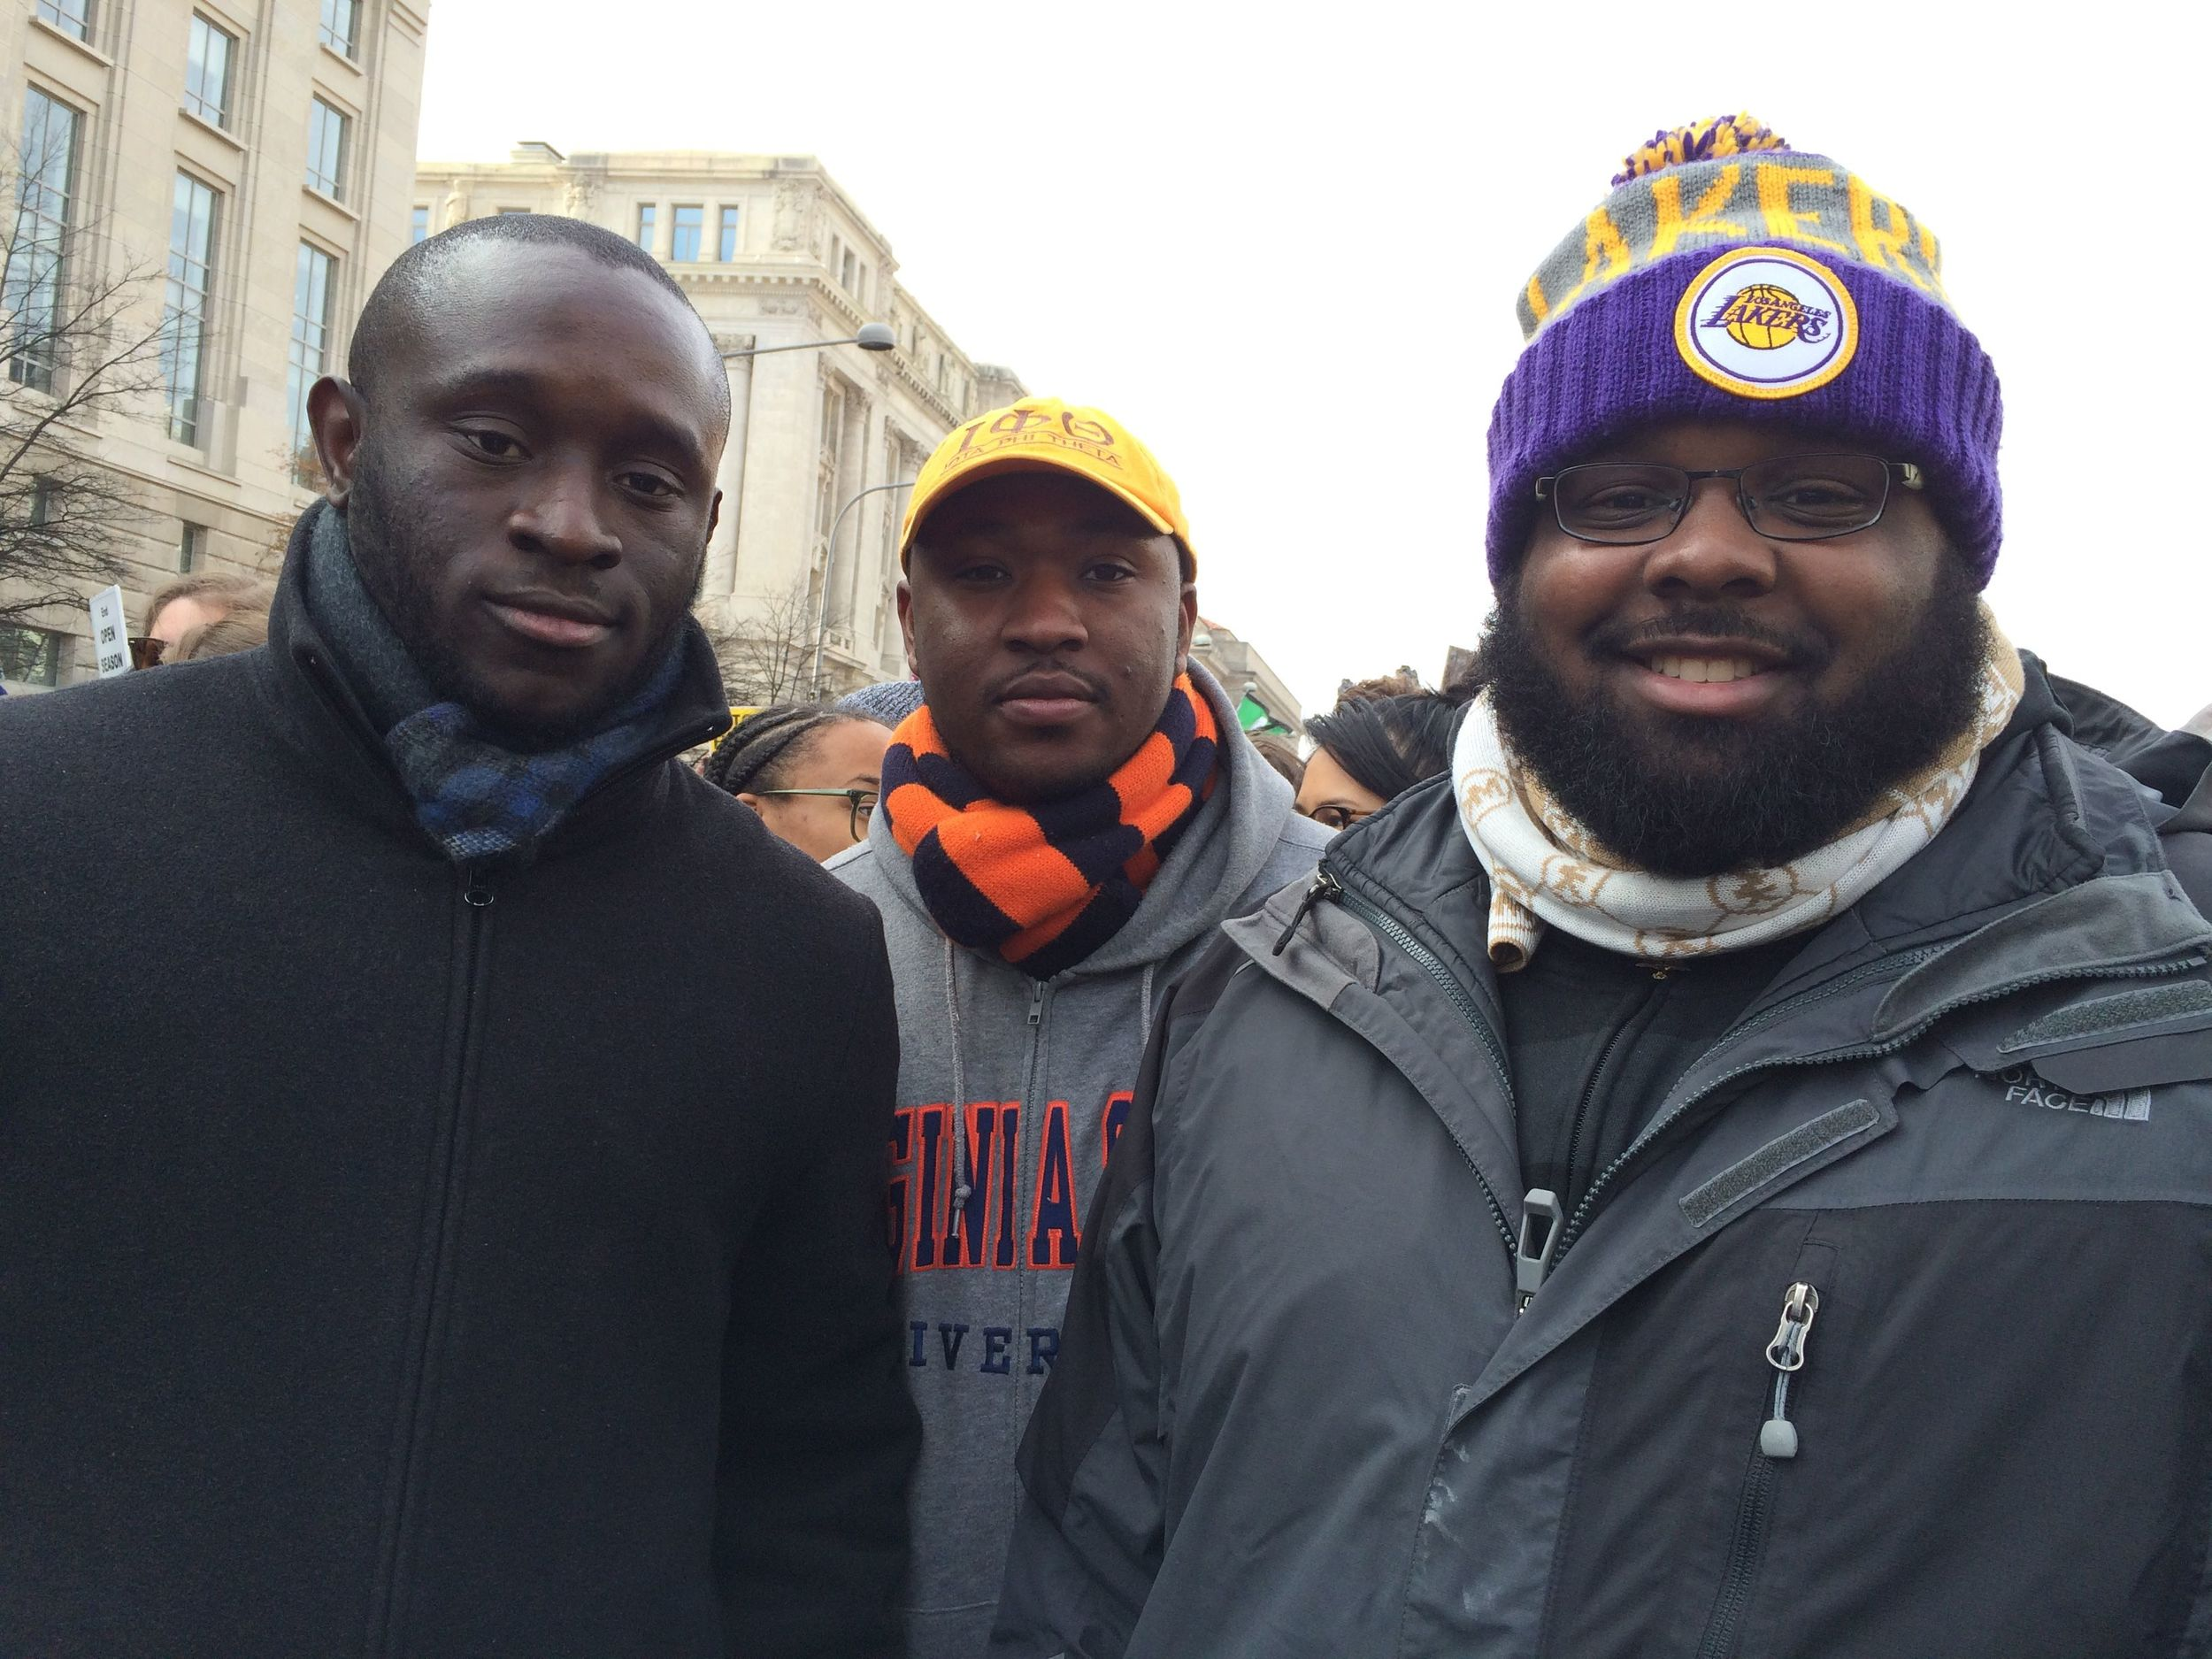 Chris, Steven, & David at #Justice4All